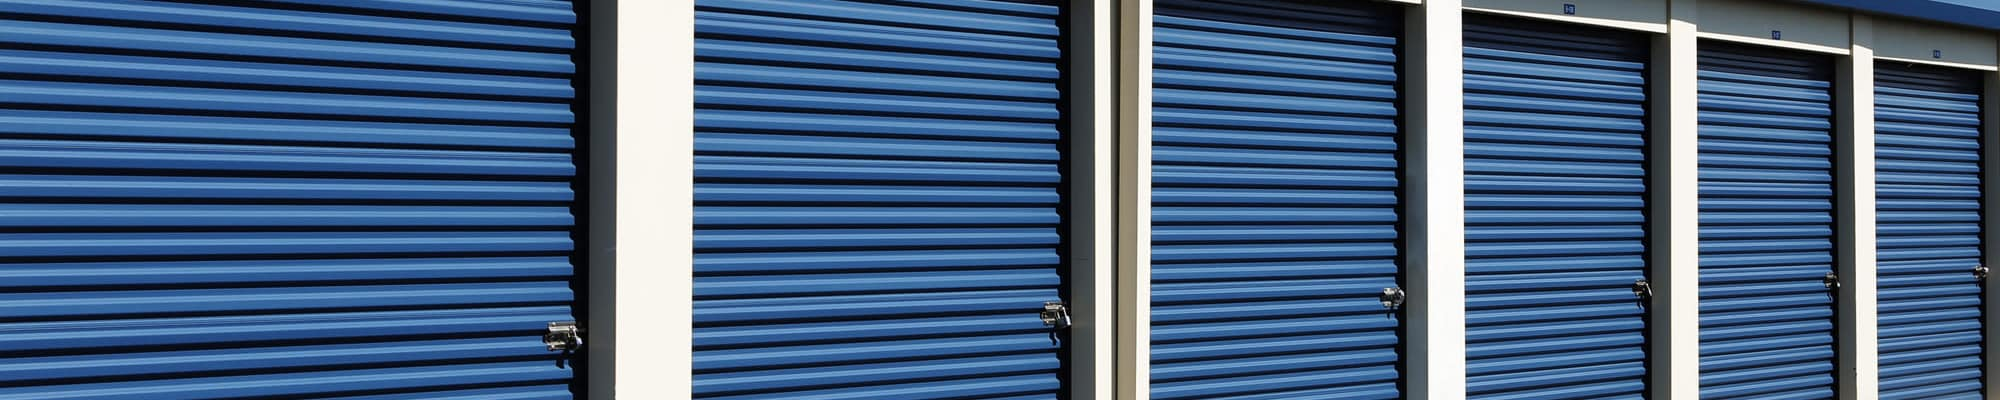 Contact us at Midgard Self Storage in Roswell, Georgia